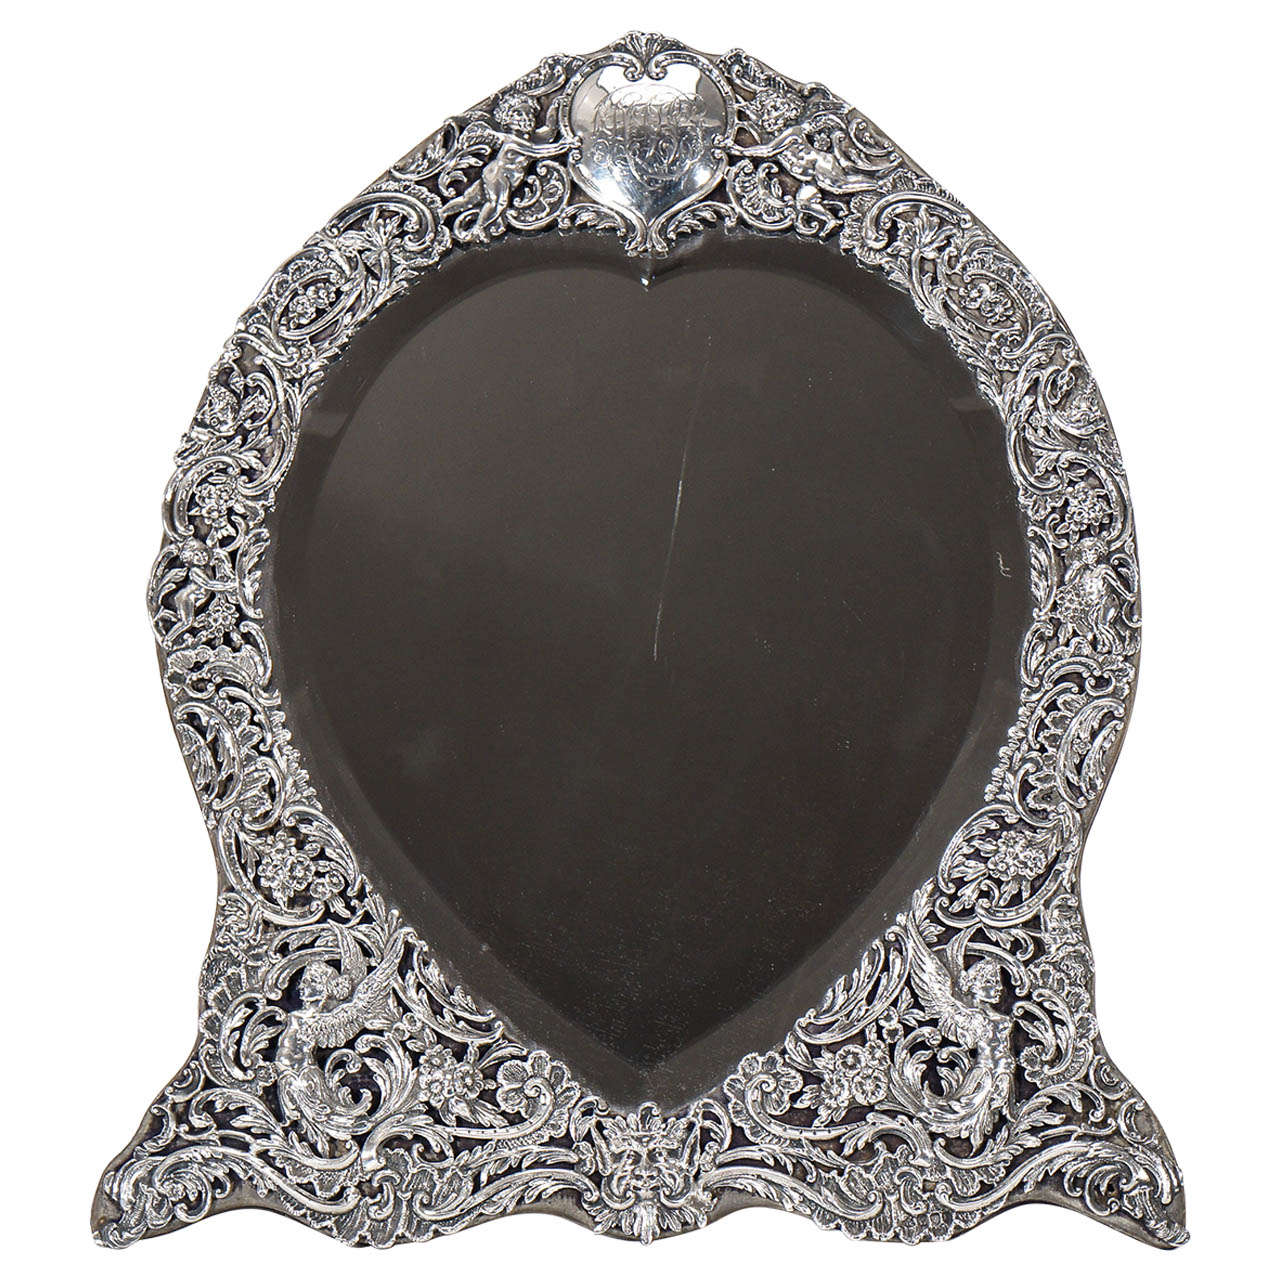 english 19th century sterling silver monumental frame with filigree decoration on velvet 1